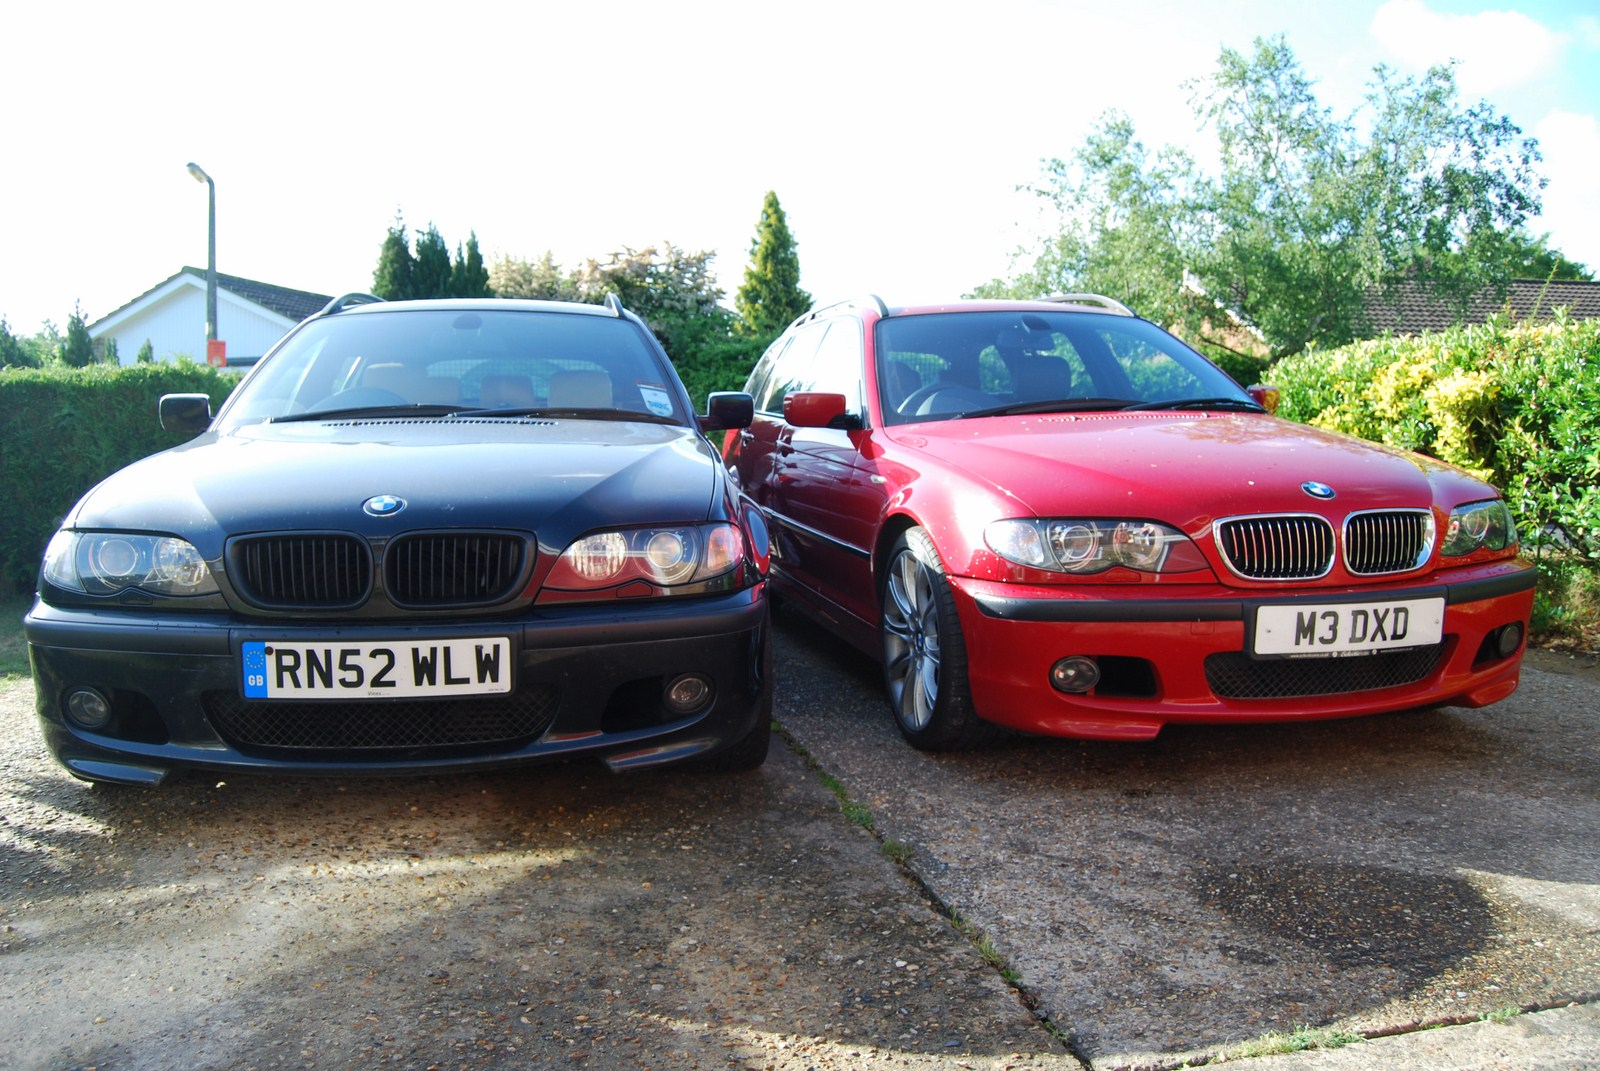 Red and black cars together in 2011